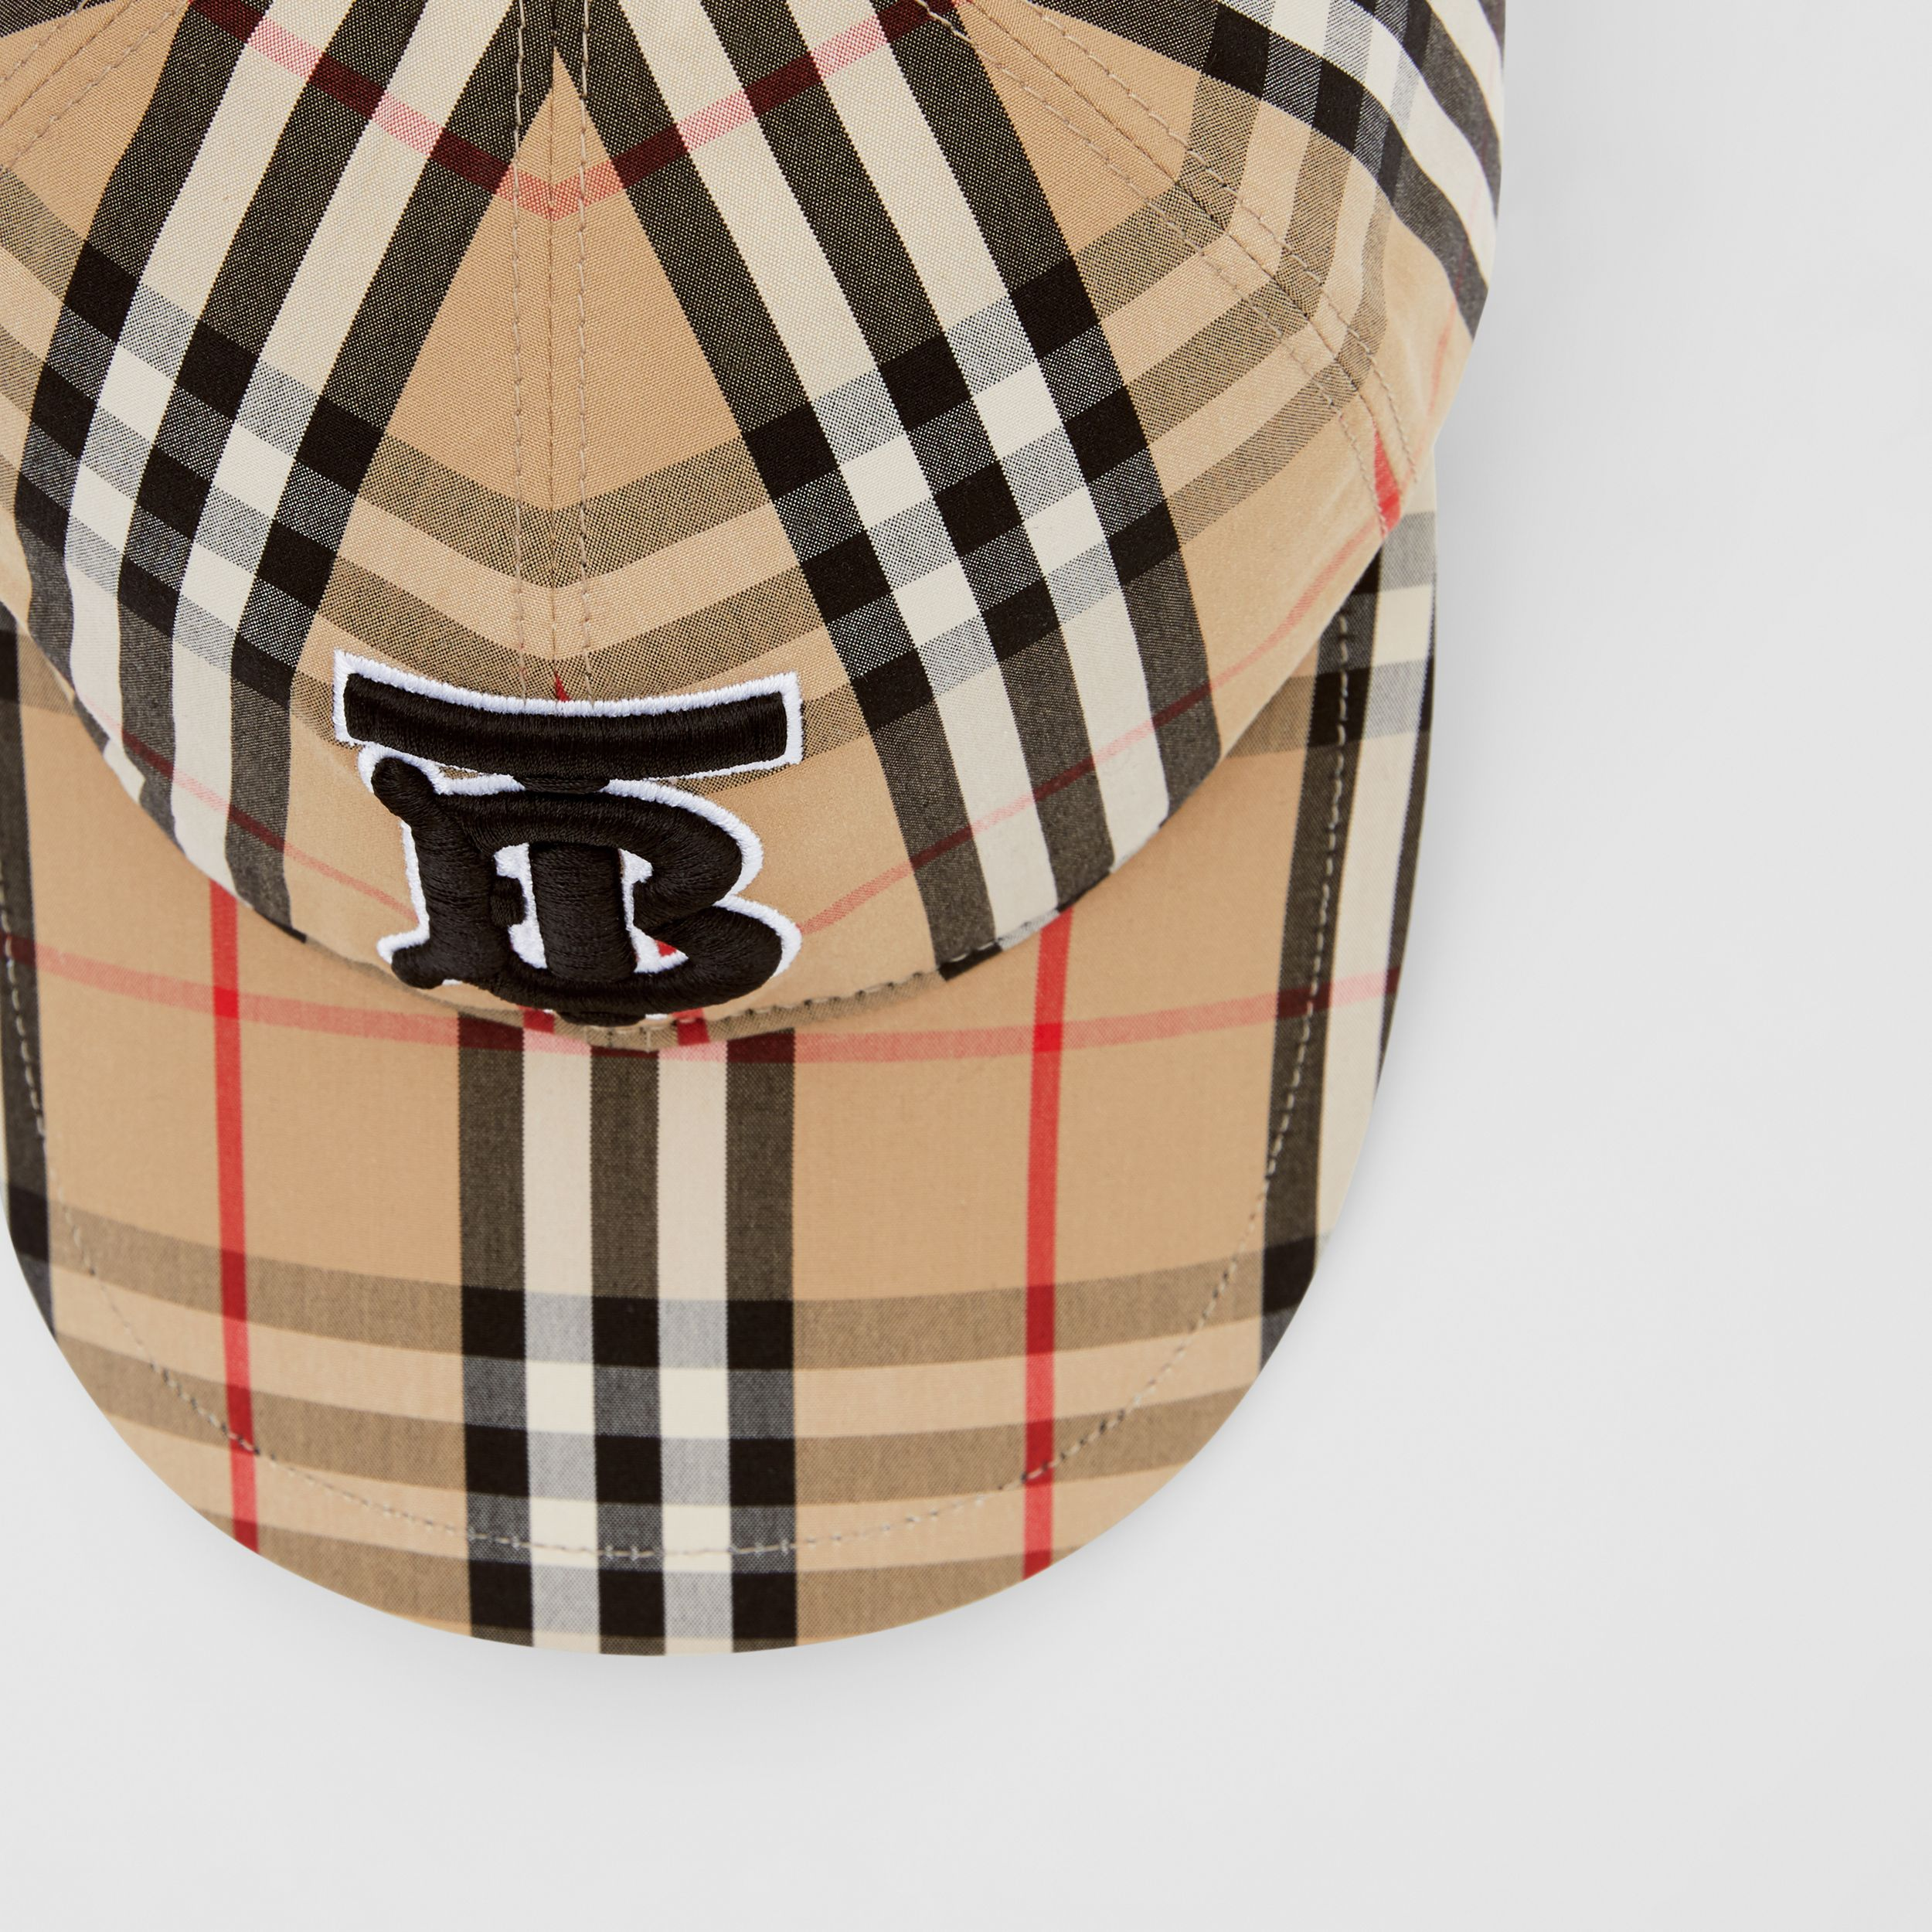 Monogram Motif Vintage Check Cotton Baseball Cap in Archive Beige | Burberry United States - 2